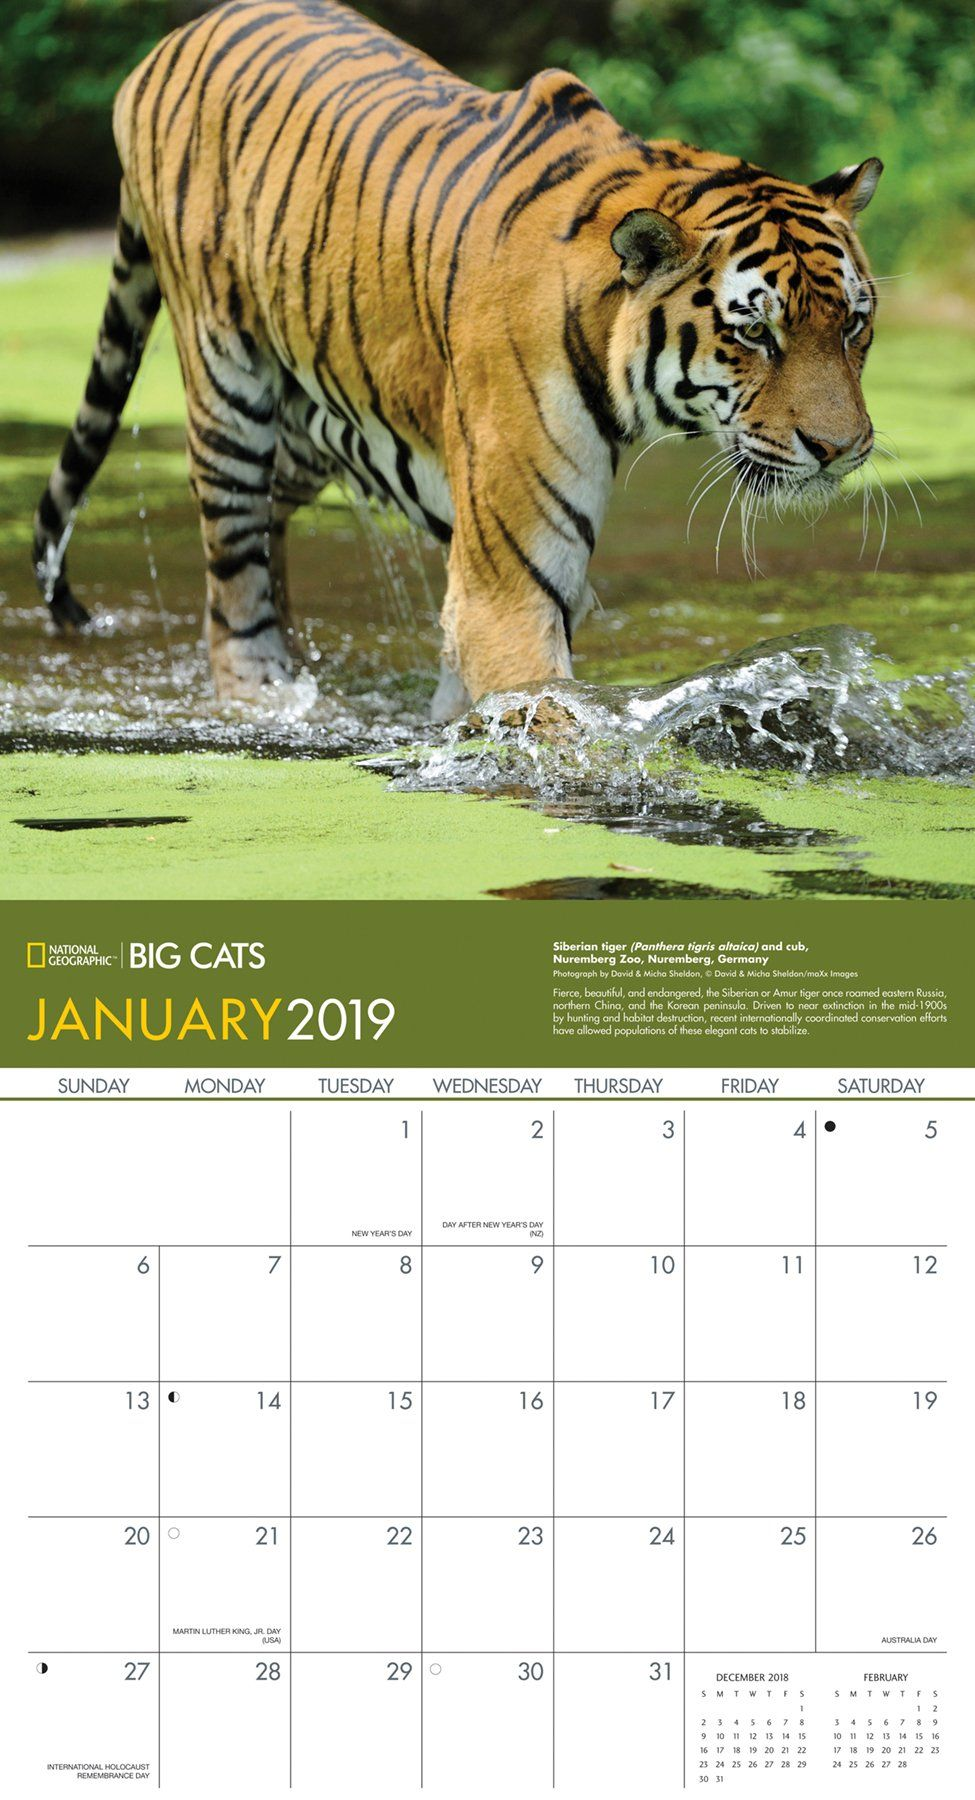 National Geographic Big Cats 2019 Wall Calendar Calendar